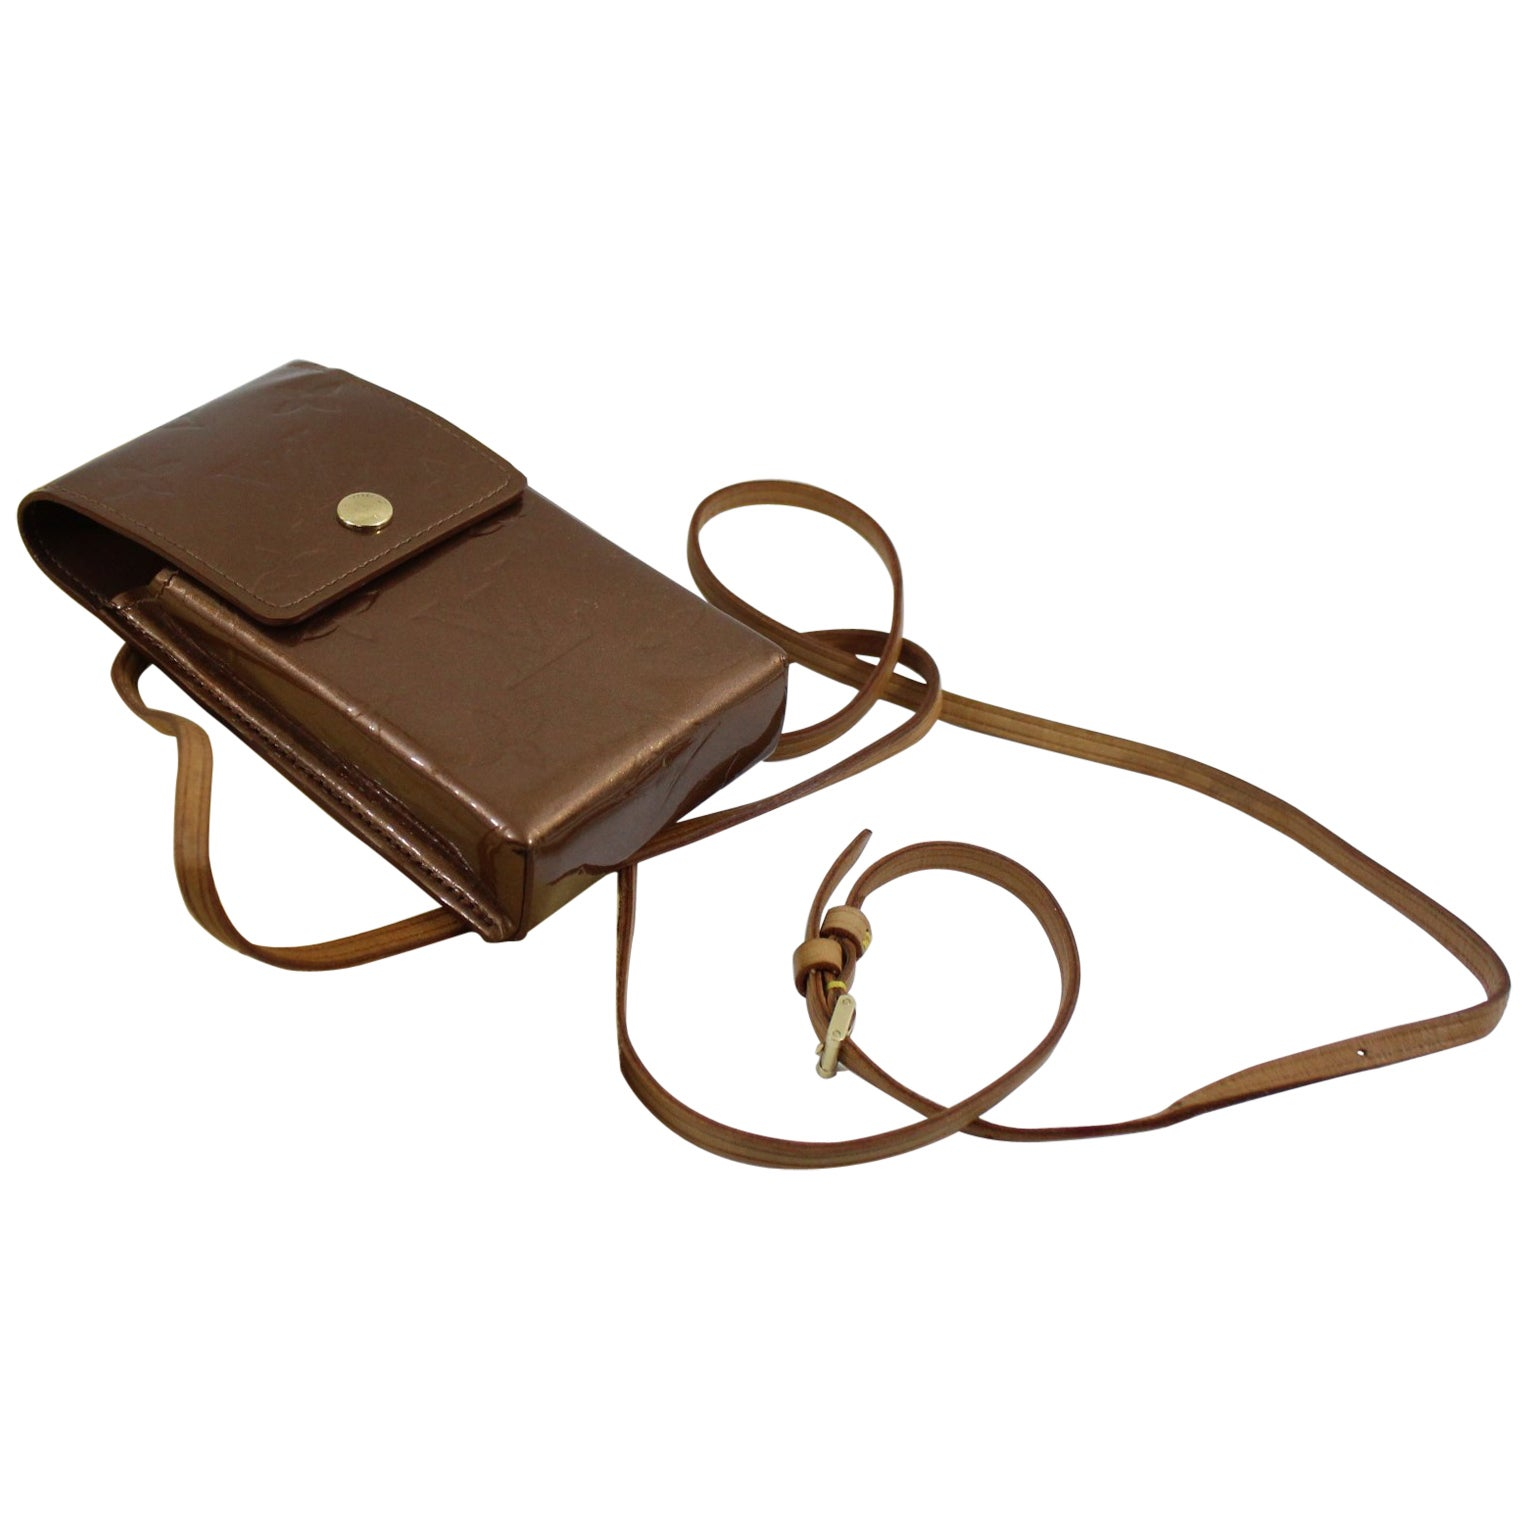 c2227c1dba2f Louis Vuitton Bronze patented Leather Case with Crossbody Strap at 1stdibs